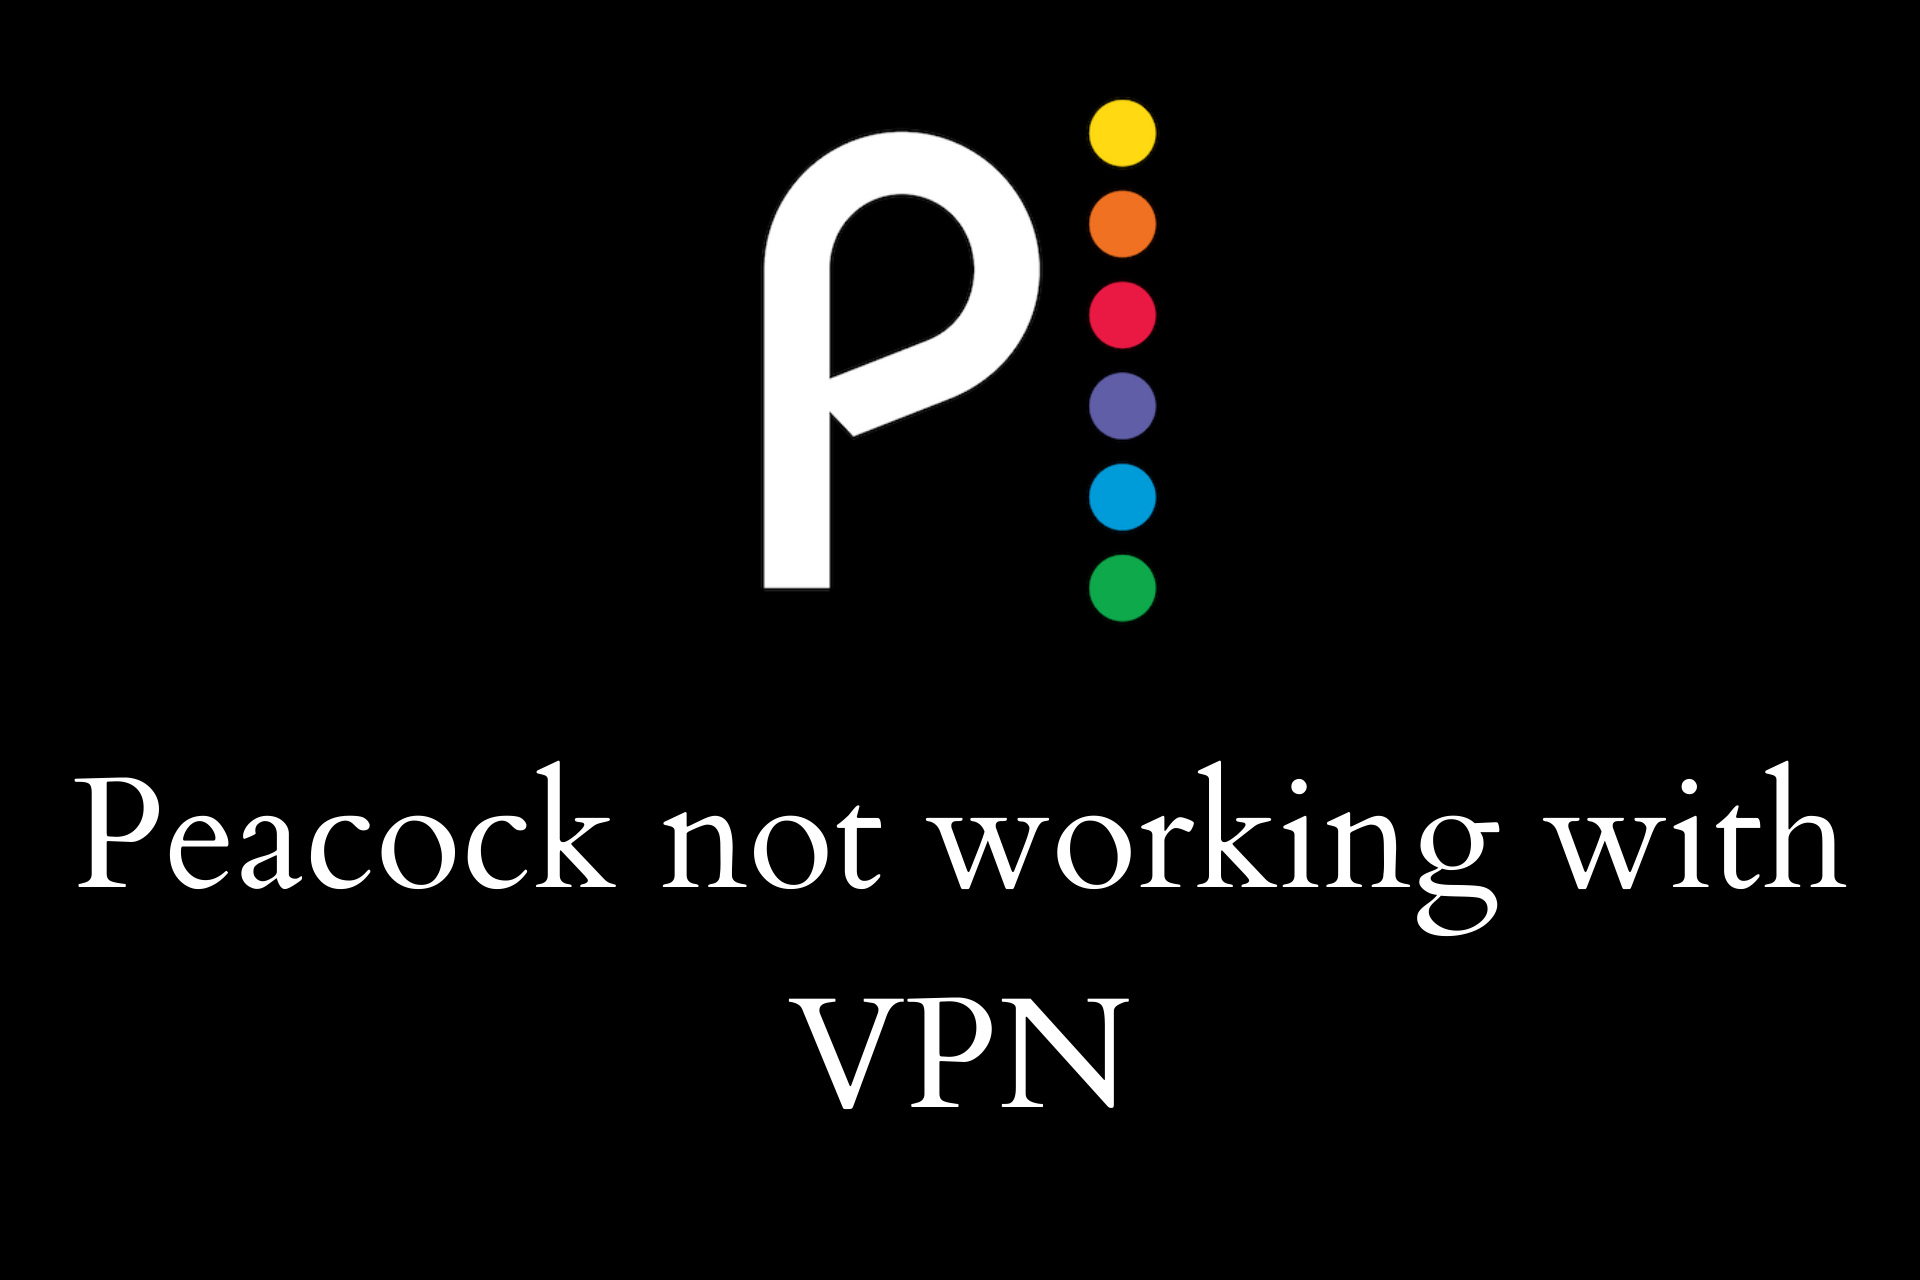 Fix Peacock not working with VPN